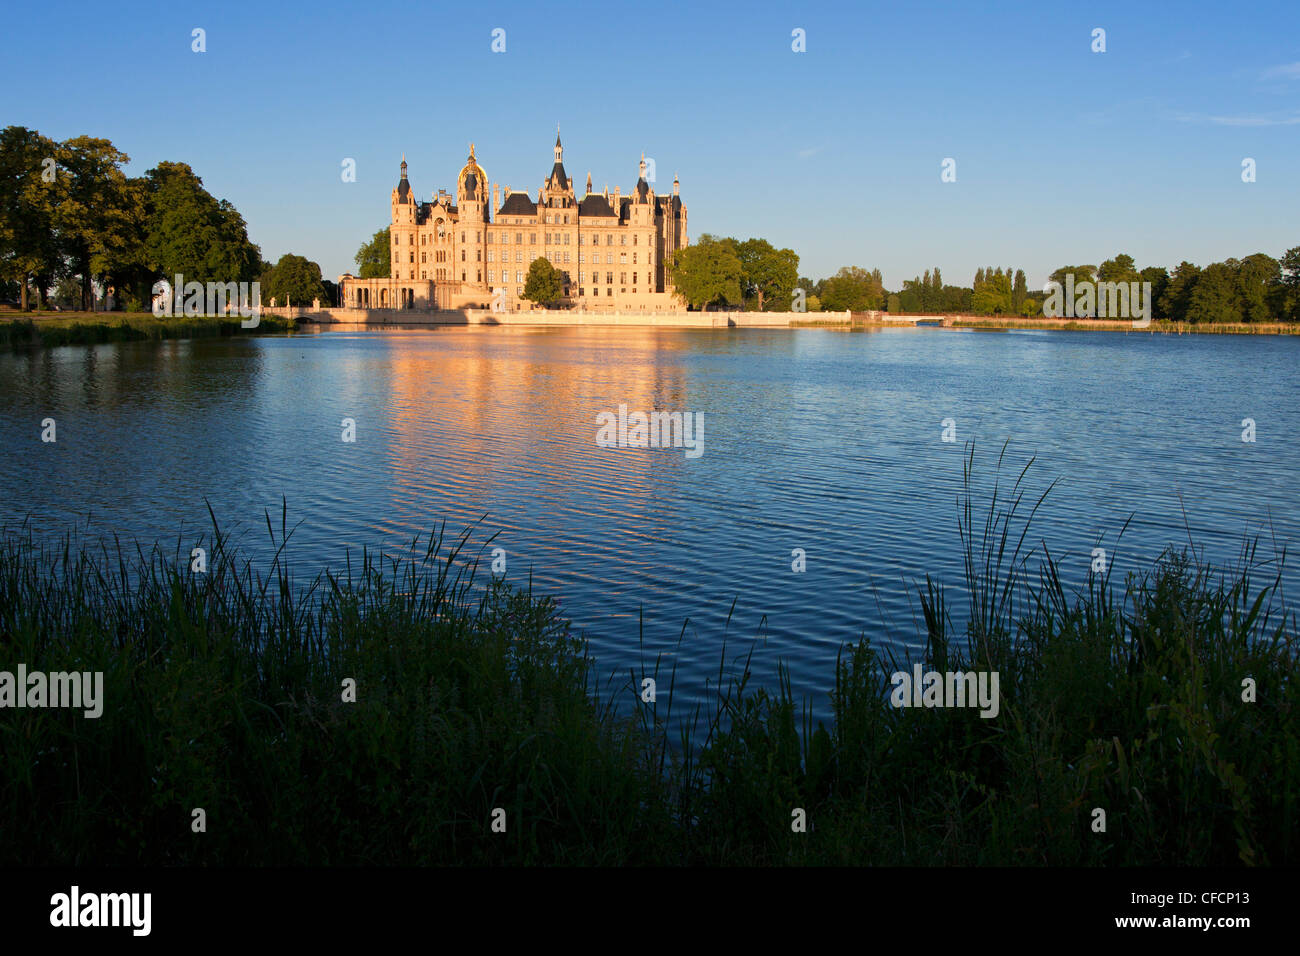 lake schwerin stockfotos lake schwerin bilder alamy. Black Bedroom Furniture Sets. Home Design Ideas